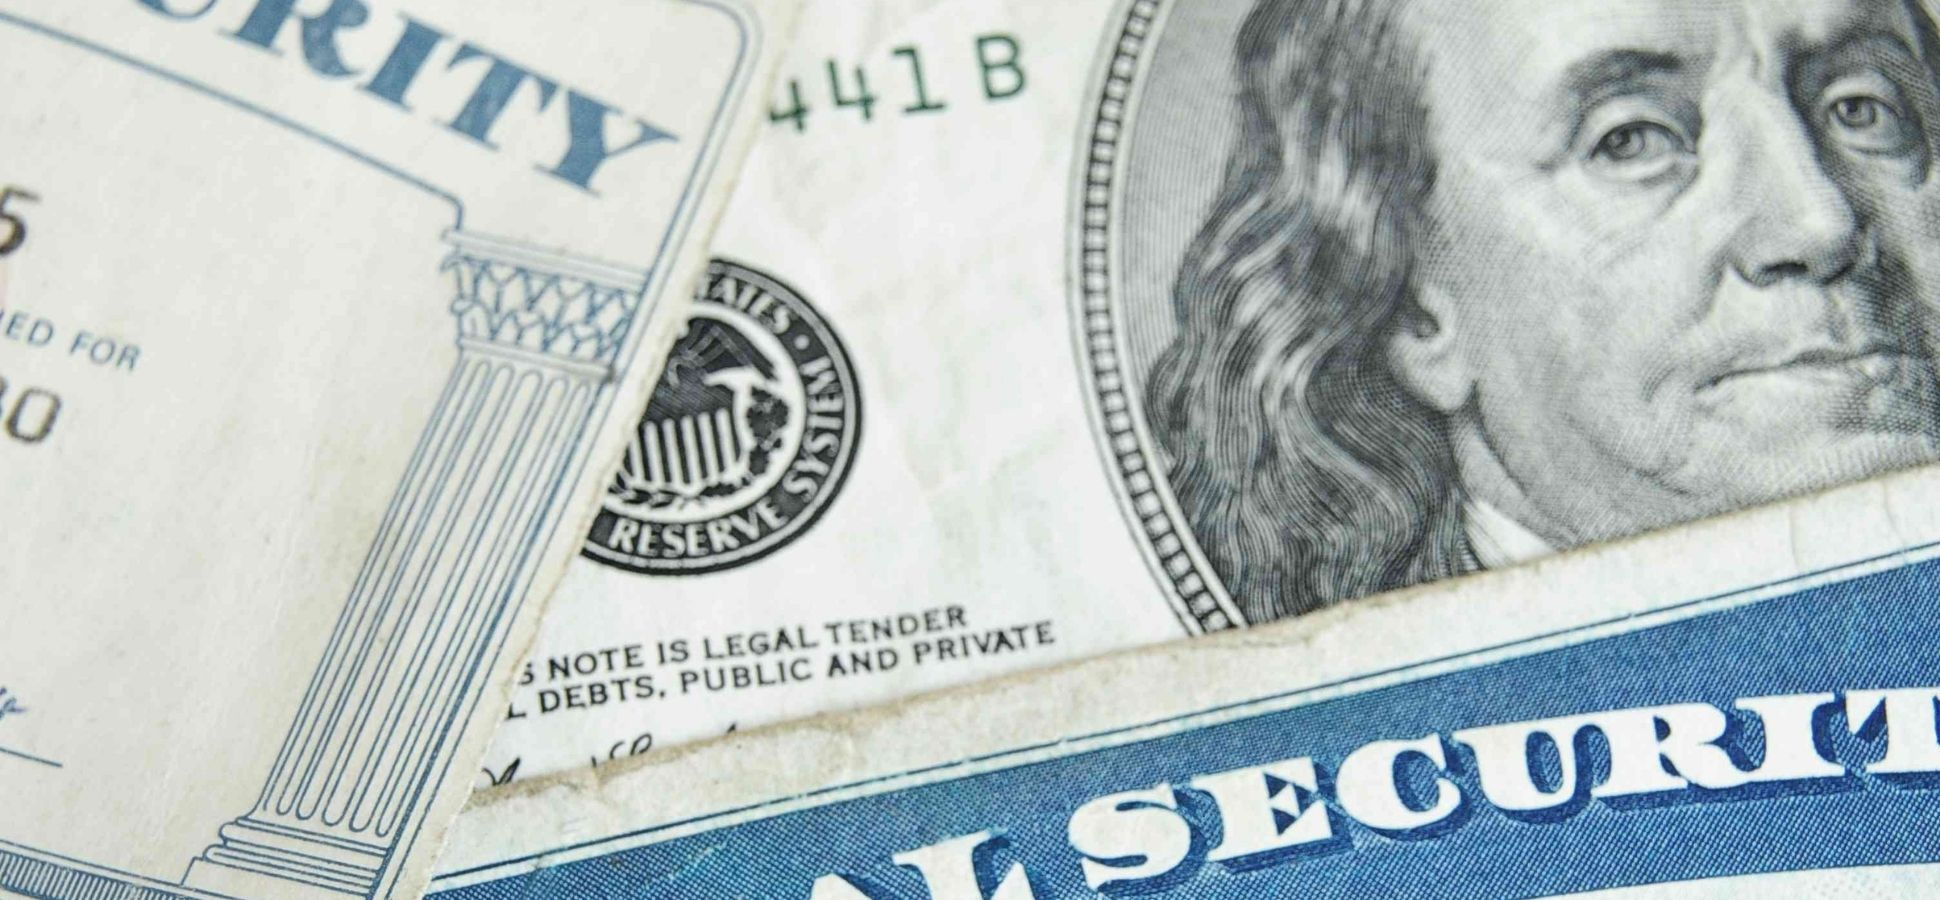 Part of a Social Security Card and 100 Dollar Bill